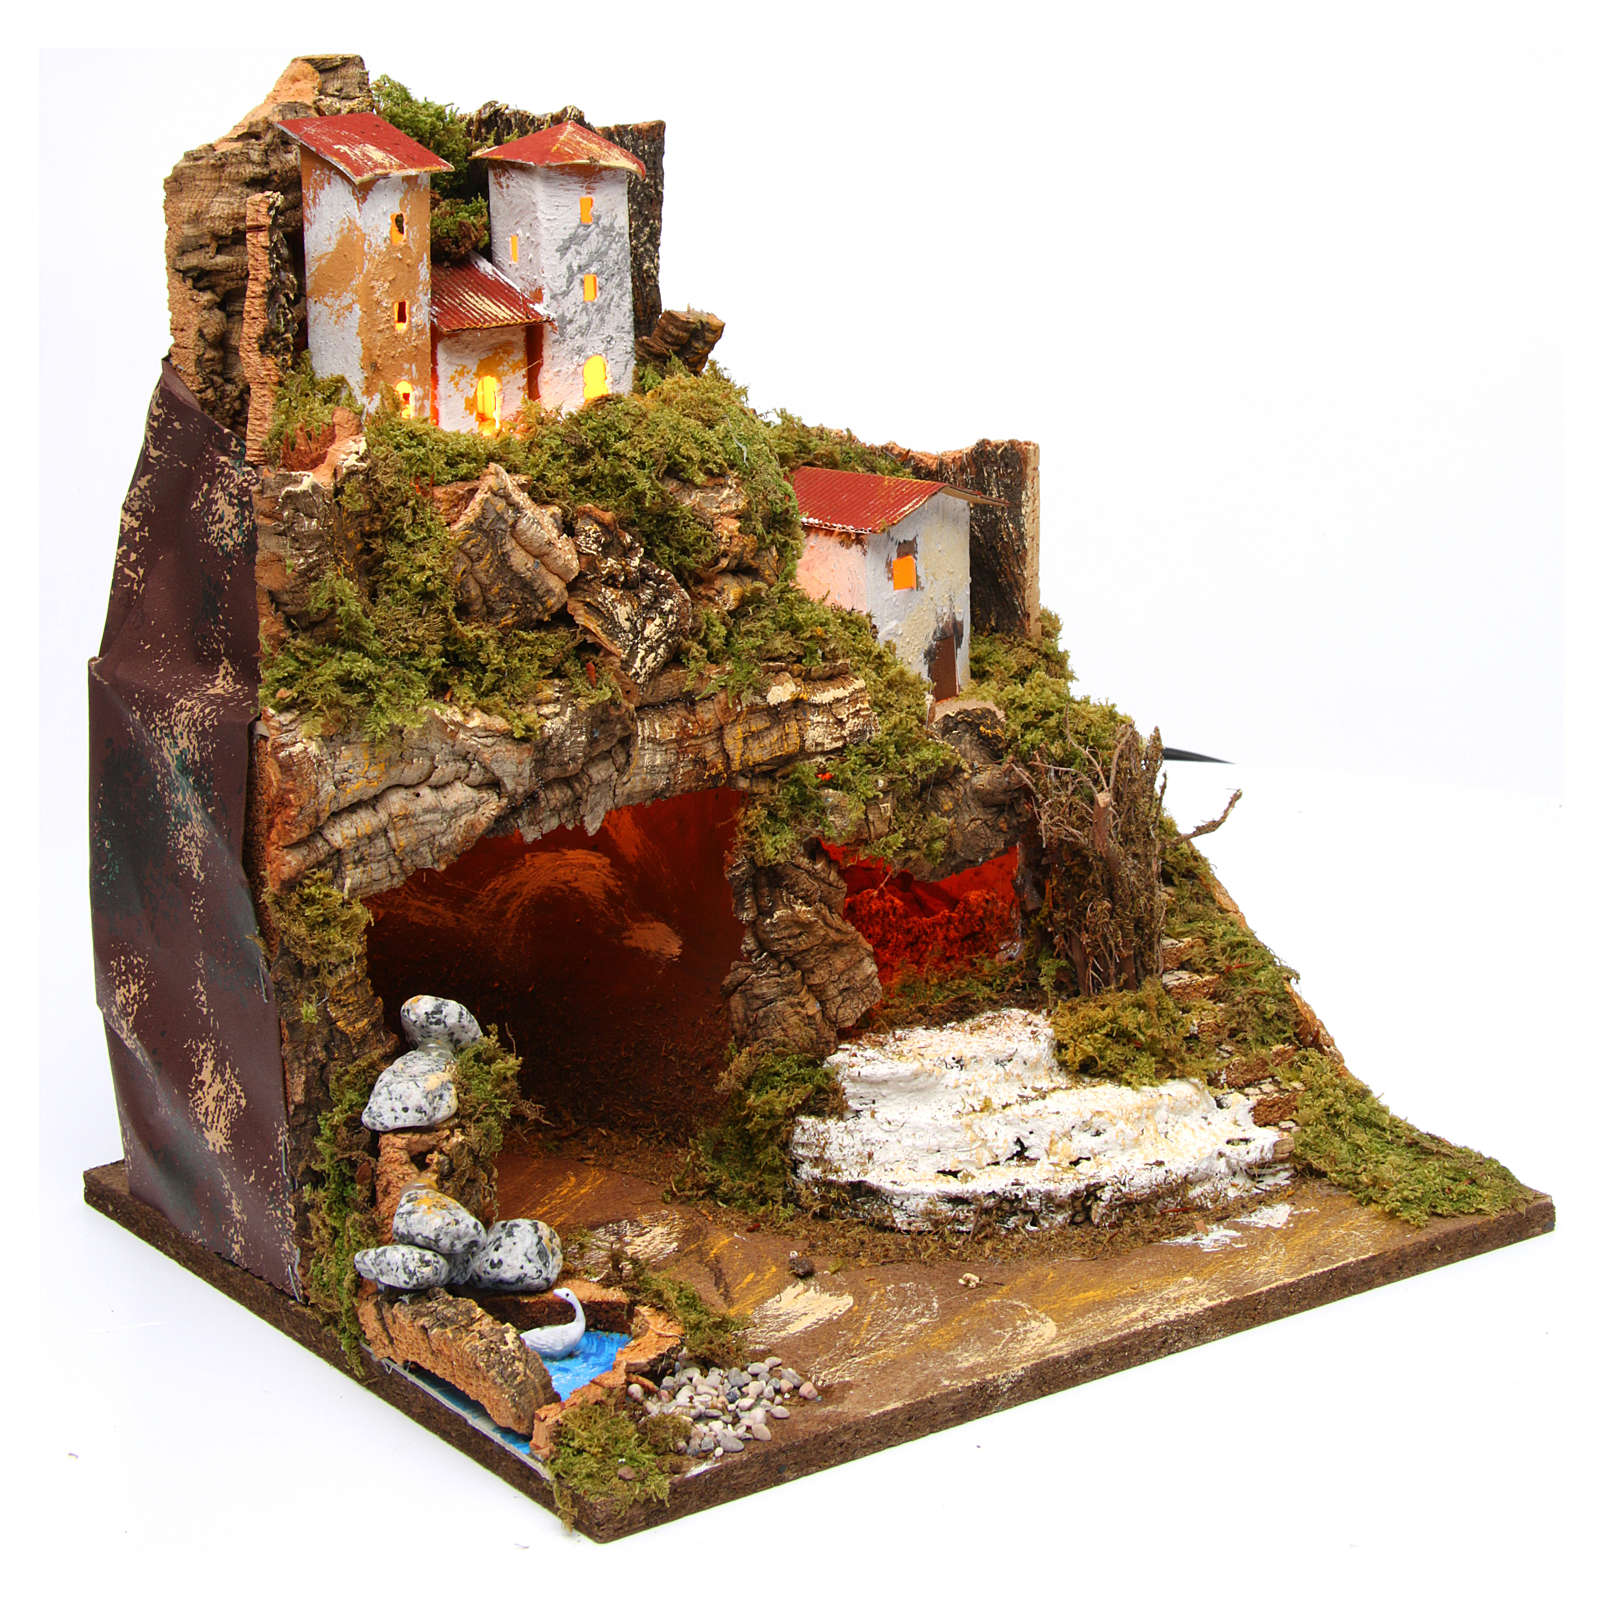 Hut in hamlet for Nativity Scene 8-10 cm with lights 35x33x30 cm 4